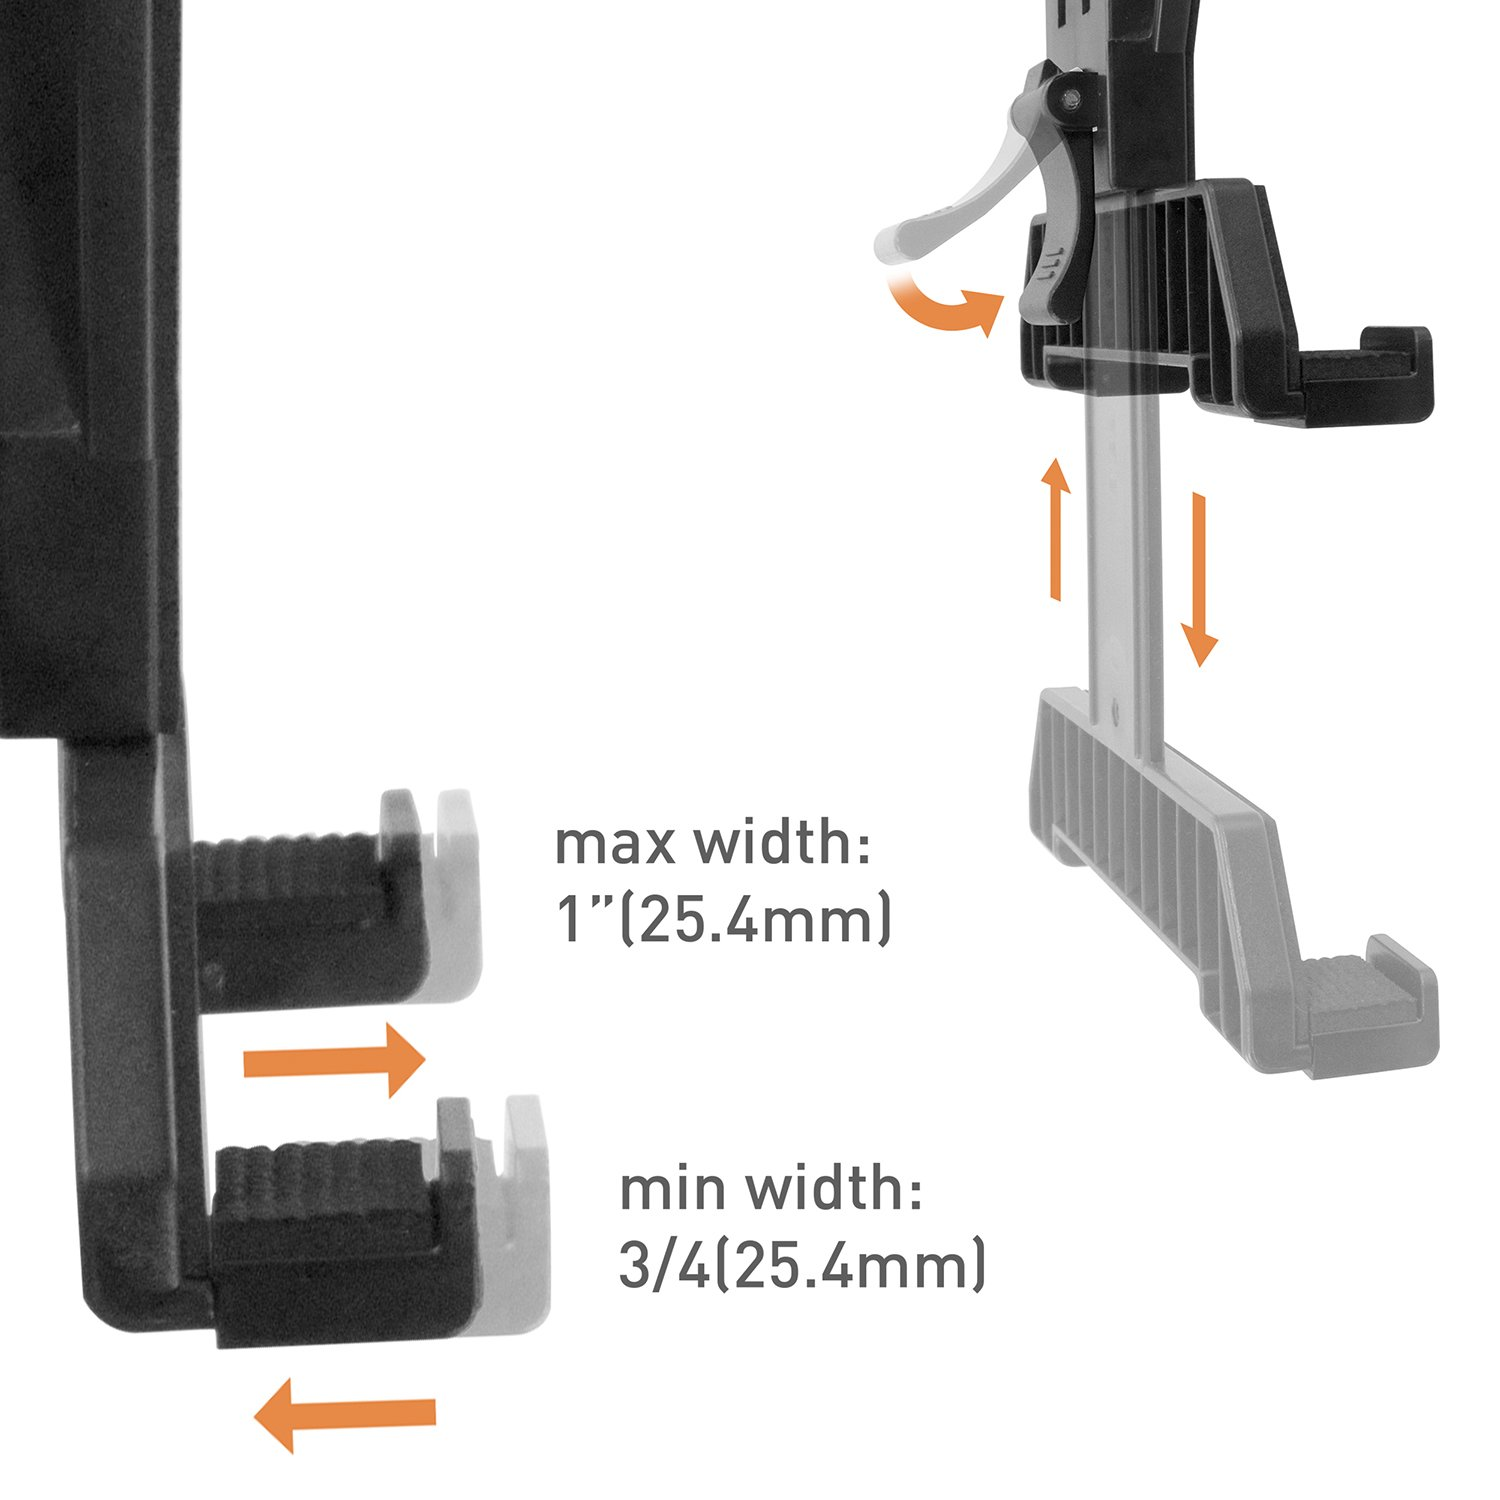 iBOLT TabDock Bizmount Clamp- Heavy Duty Dual-Ball C-Clamp mount for all 7'' - 10'' tablets (iPad, Samsung Galaxy Tab, etc.) For Desks, Tables, Wheelchairs, Carts: Great For Homes, Schools, Offices by iBOLT (Image #5)